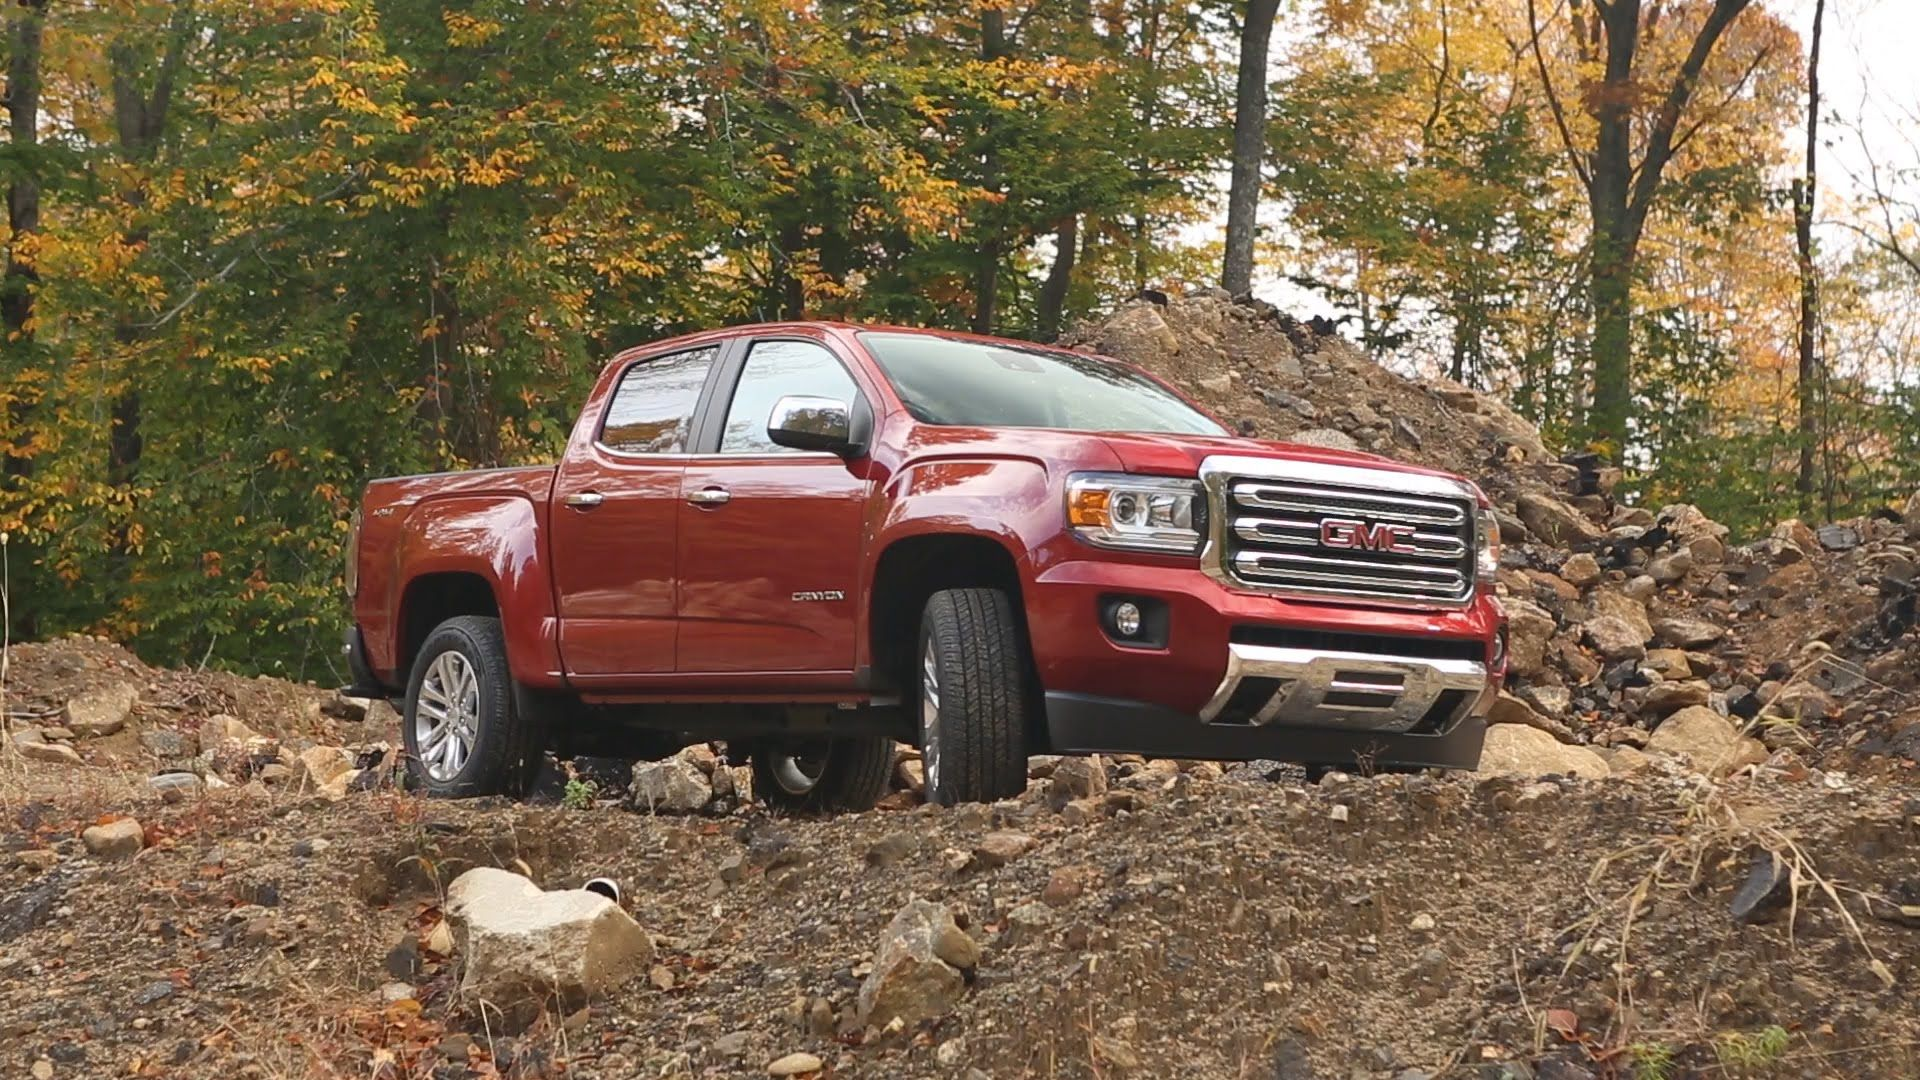 Gm Tries To Revive The Shrinking Compact Truck Market With The New